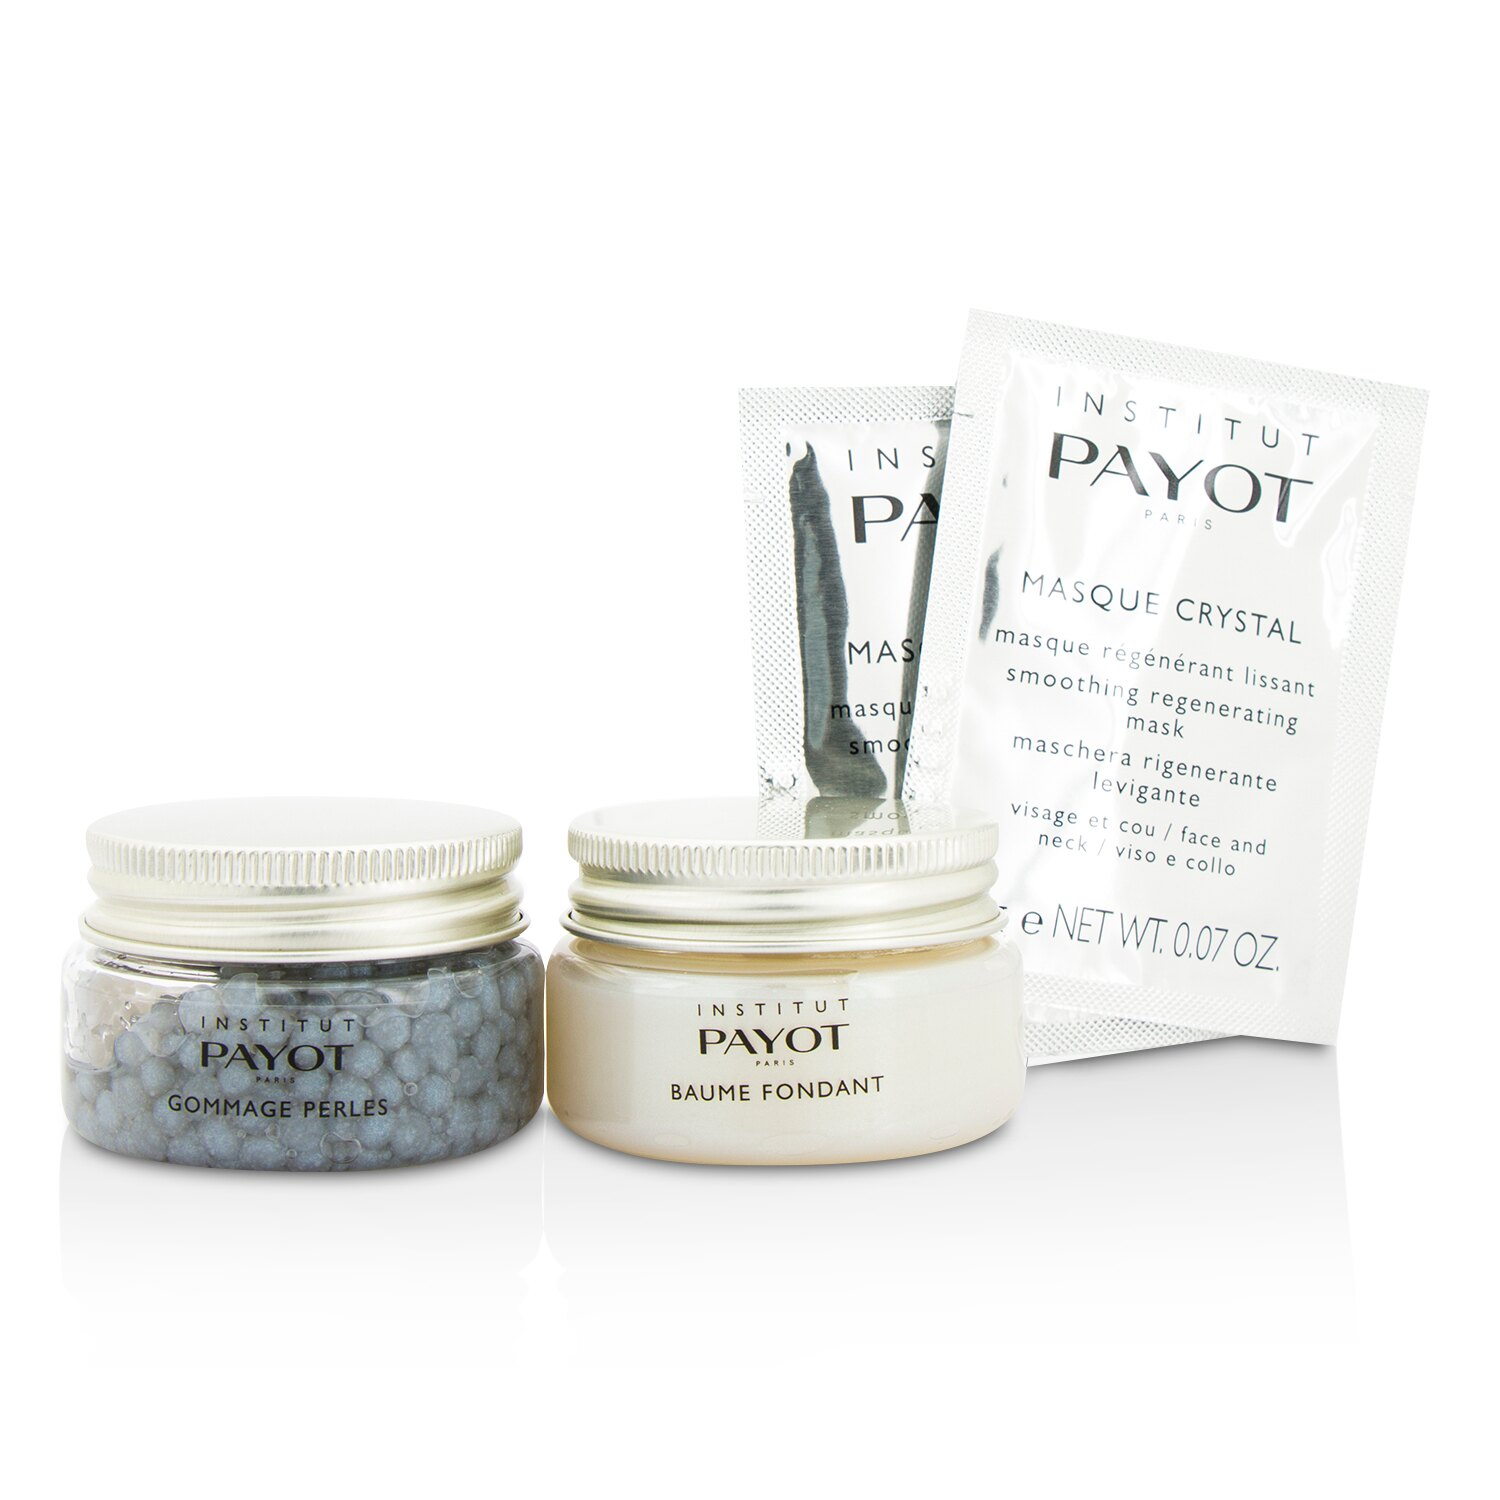 Payot 柏姿 頂級體驗套裝: 臉部磨砂+面霜+面膜 Supreme Experience Set: Gommage Perles + Baume Fondant + Masque Crystal